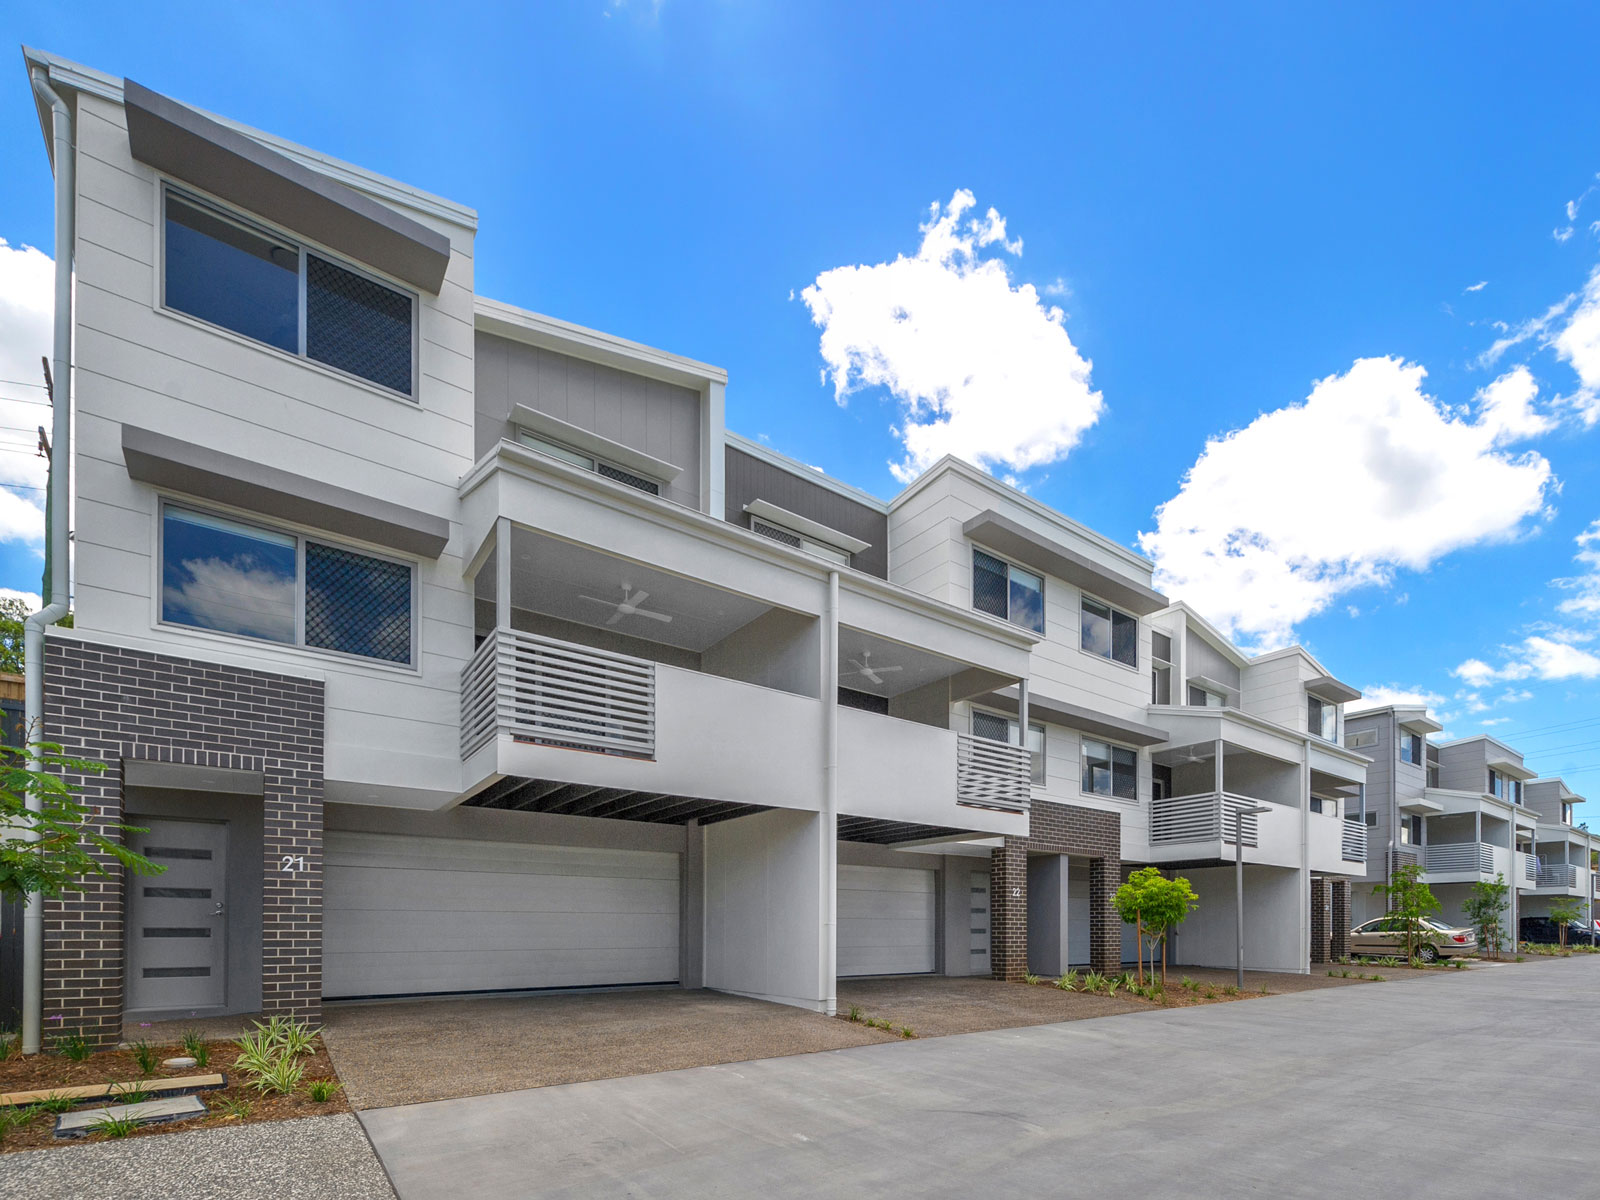 Wattle Grove - Luxury townhouses with double car garages